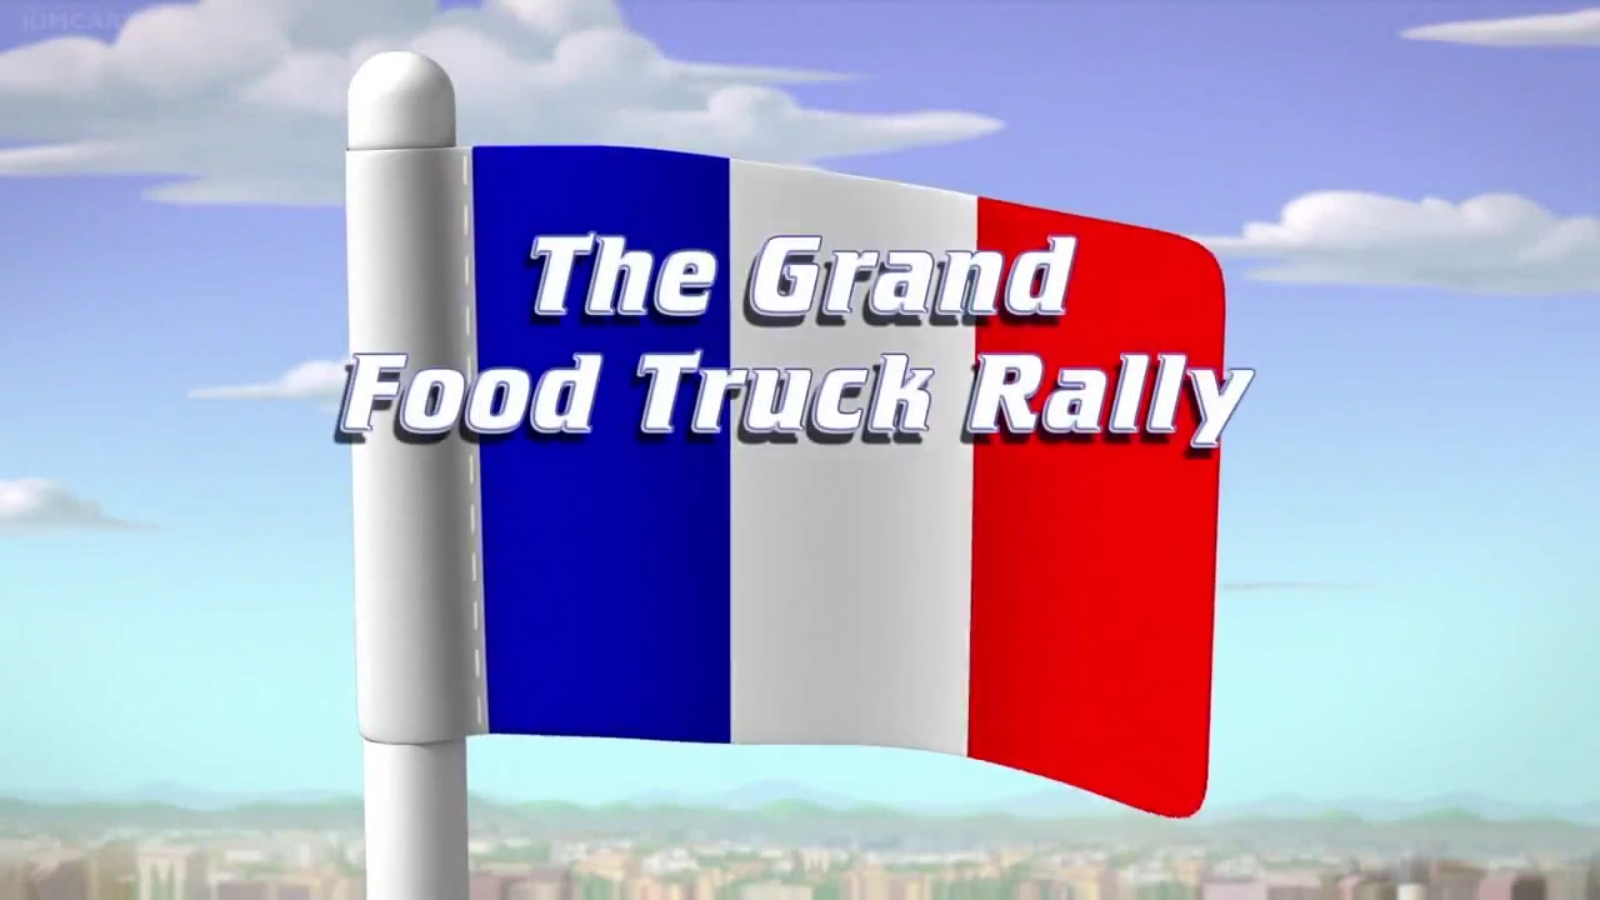 The Grand Food Truck Rally